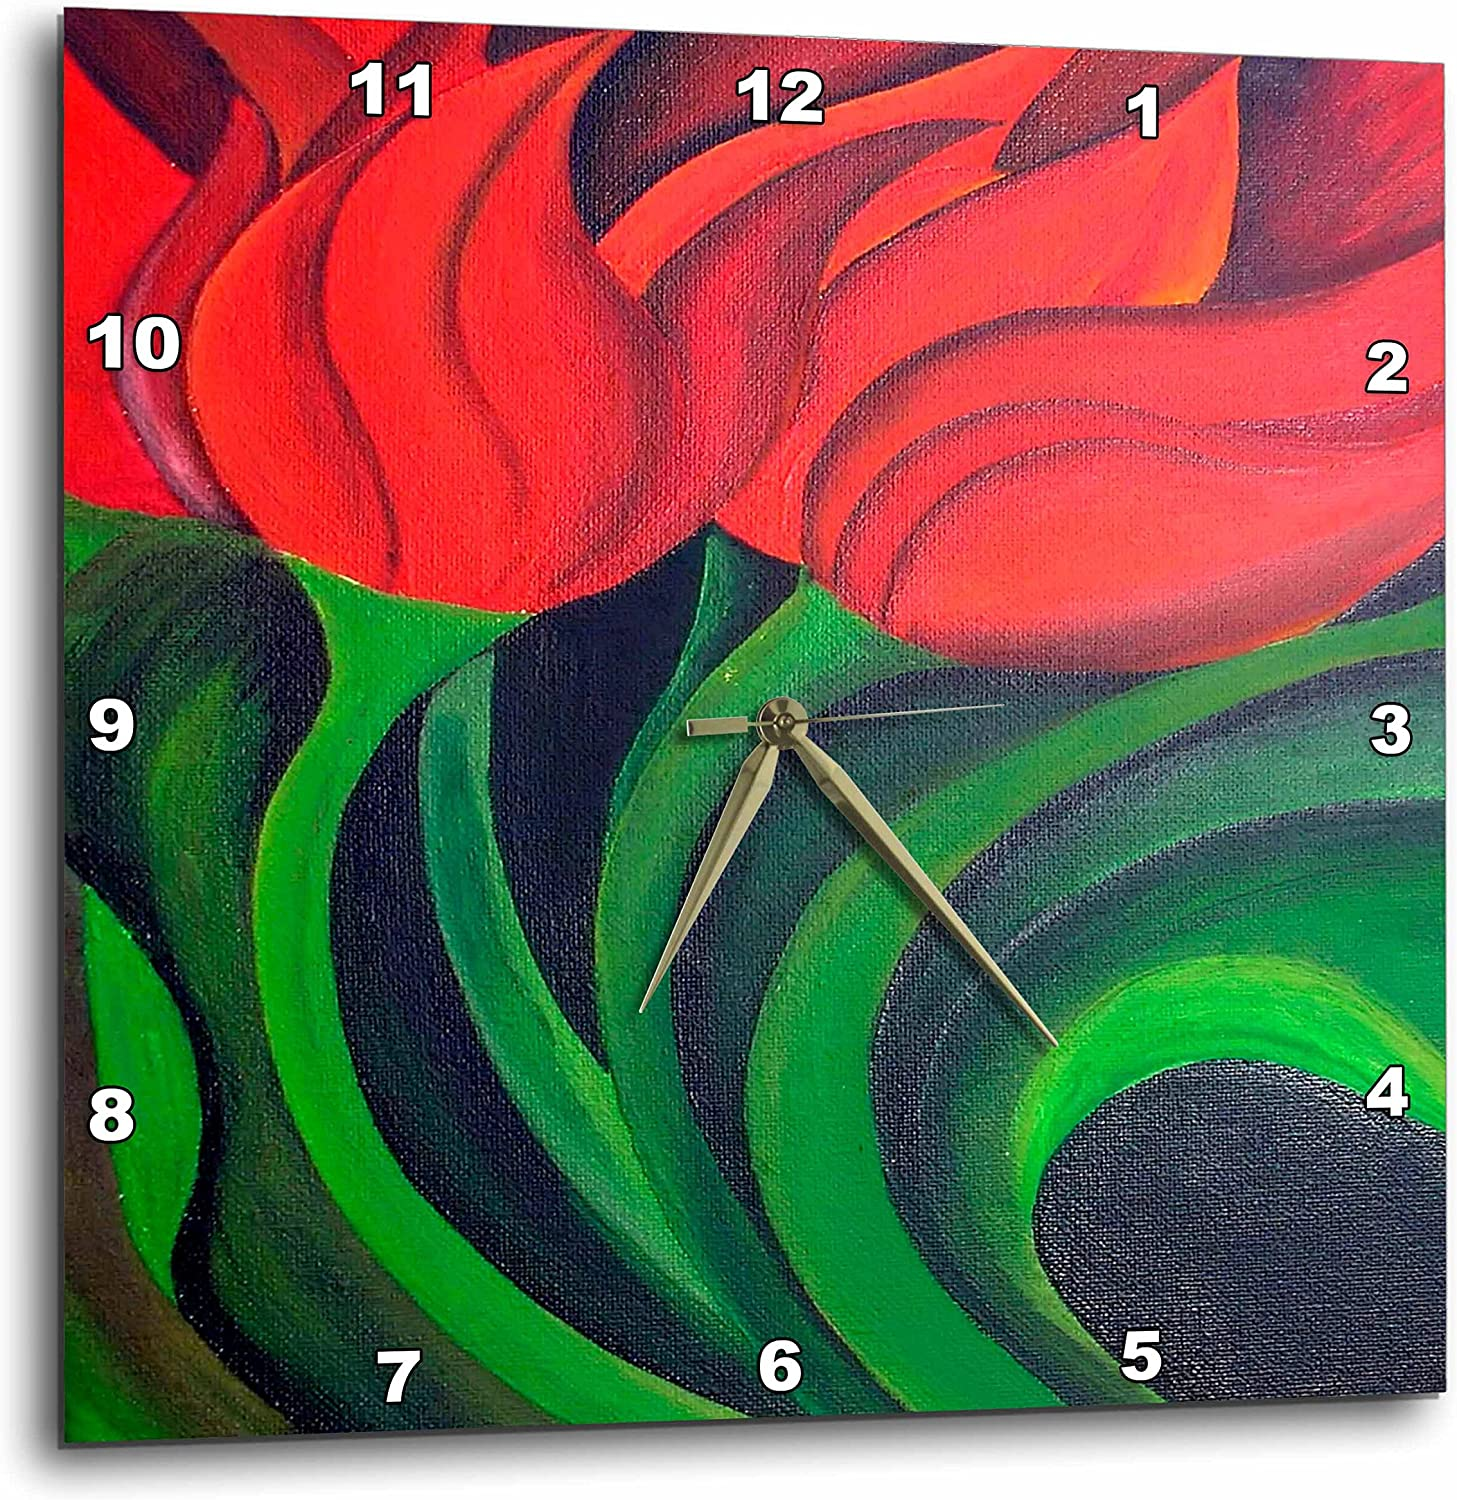 Amazon Com 3drose Llc Flowers Red Tulips 10 By 10 Inch Wall Clock Home Kitchen